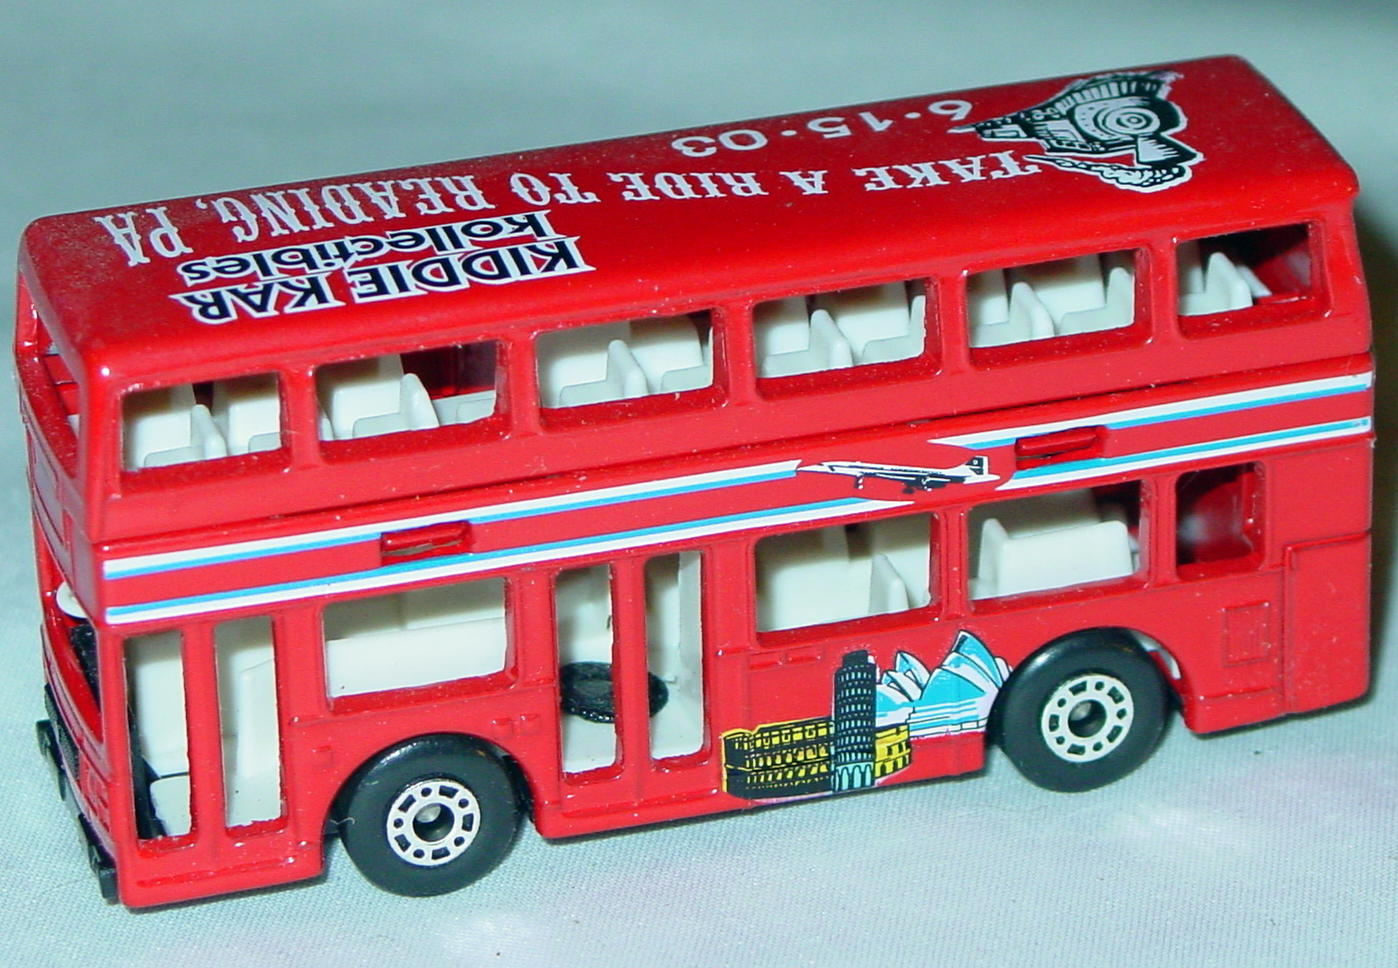 ASAP-CCI 17 C 67 - Titan Bus Red white interior Union Jack Kiddie Car CCI